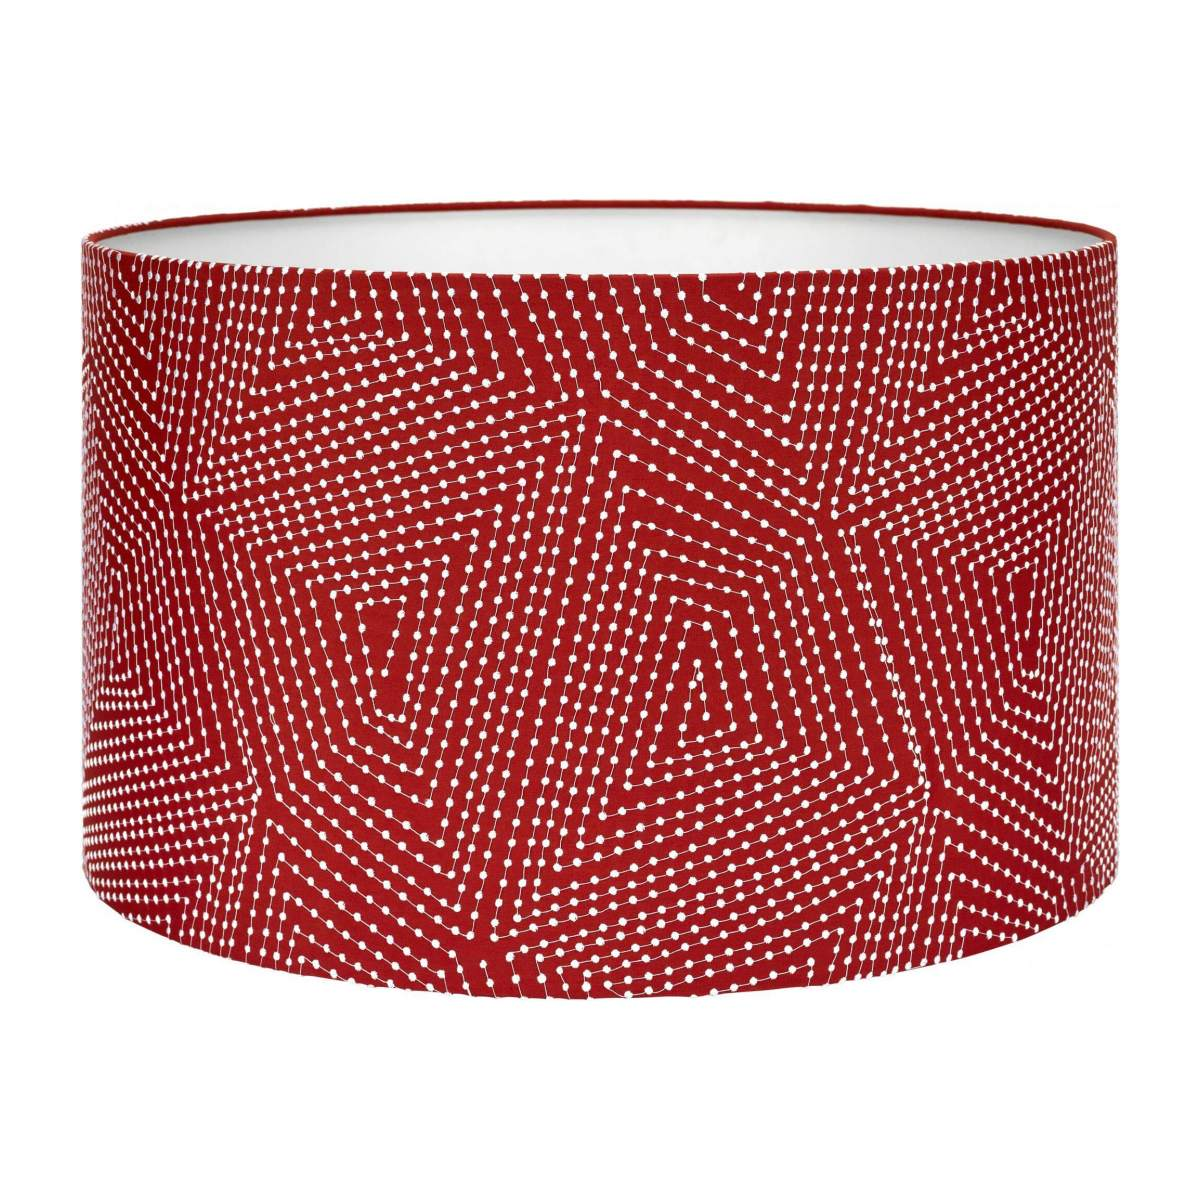 Lampshade 53cm, red with white patterns n°1